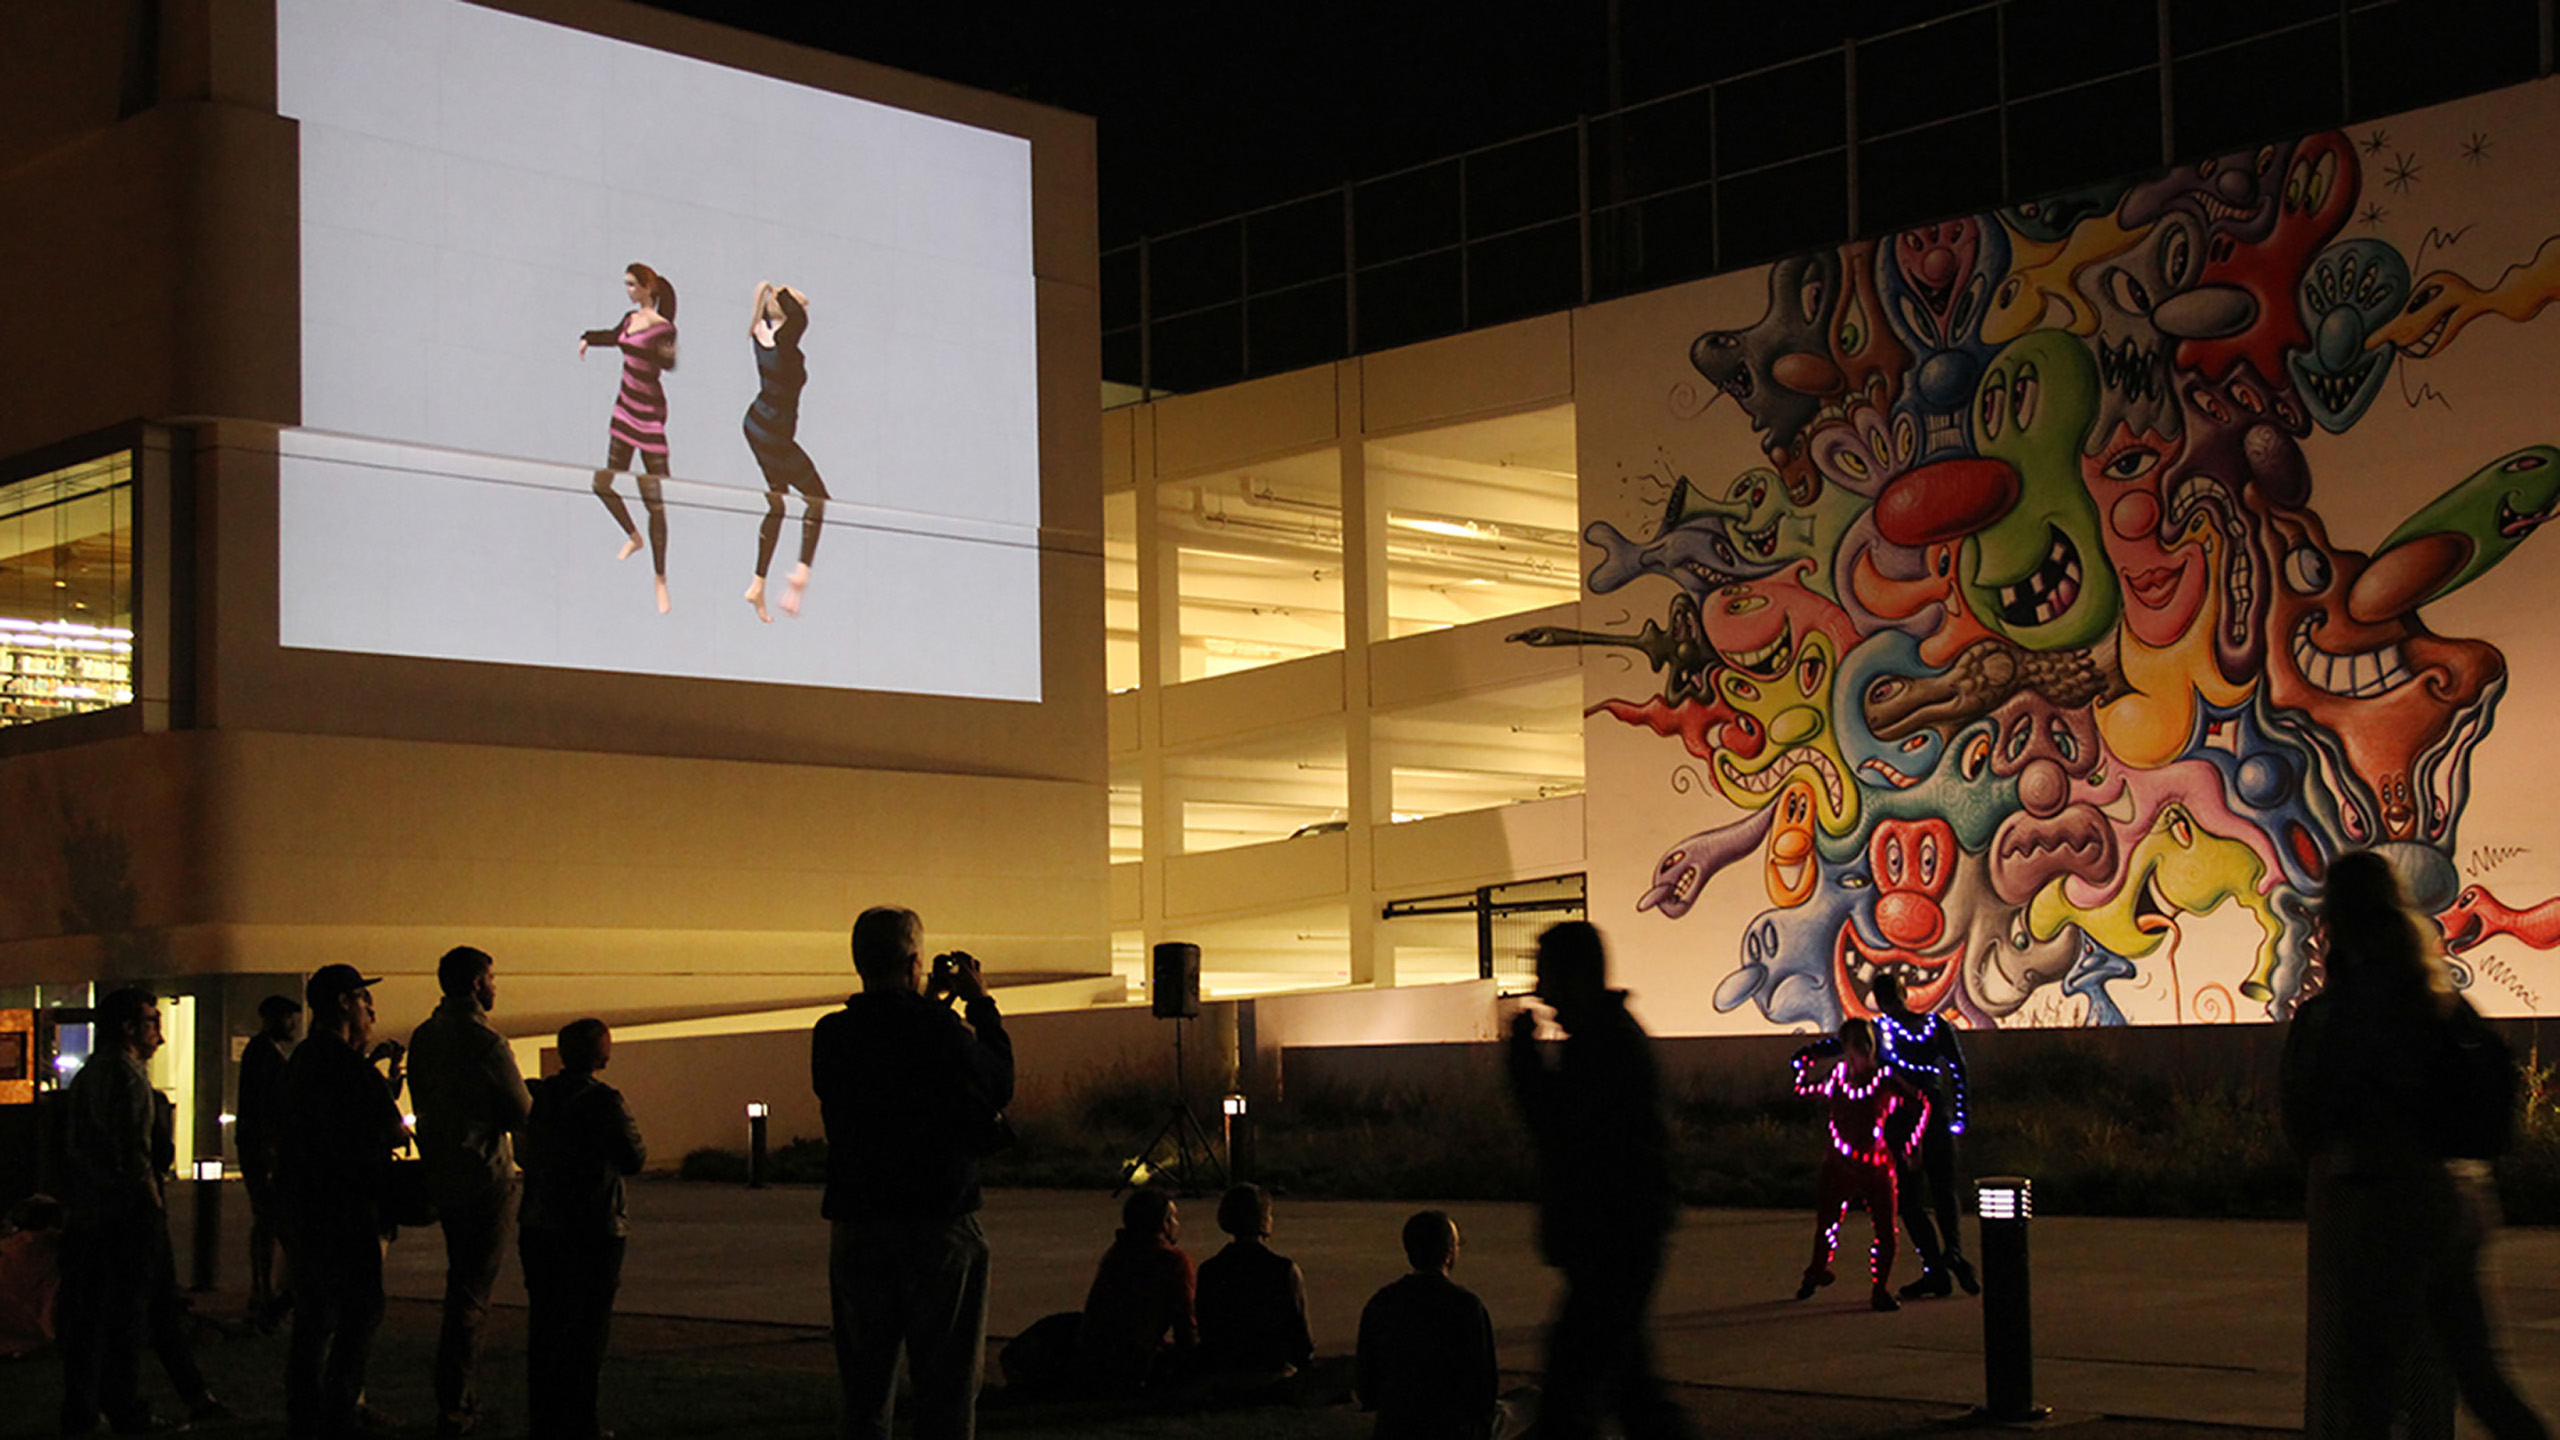 Vanessa Blaylock Company dancers projected onto a large parking structure wall as Donna Sternberg Dancers perform on the ground at ONE NIght